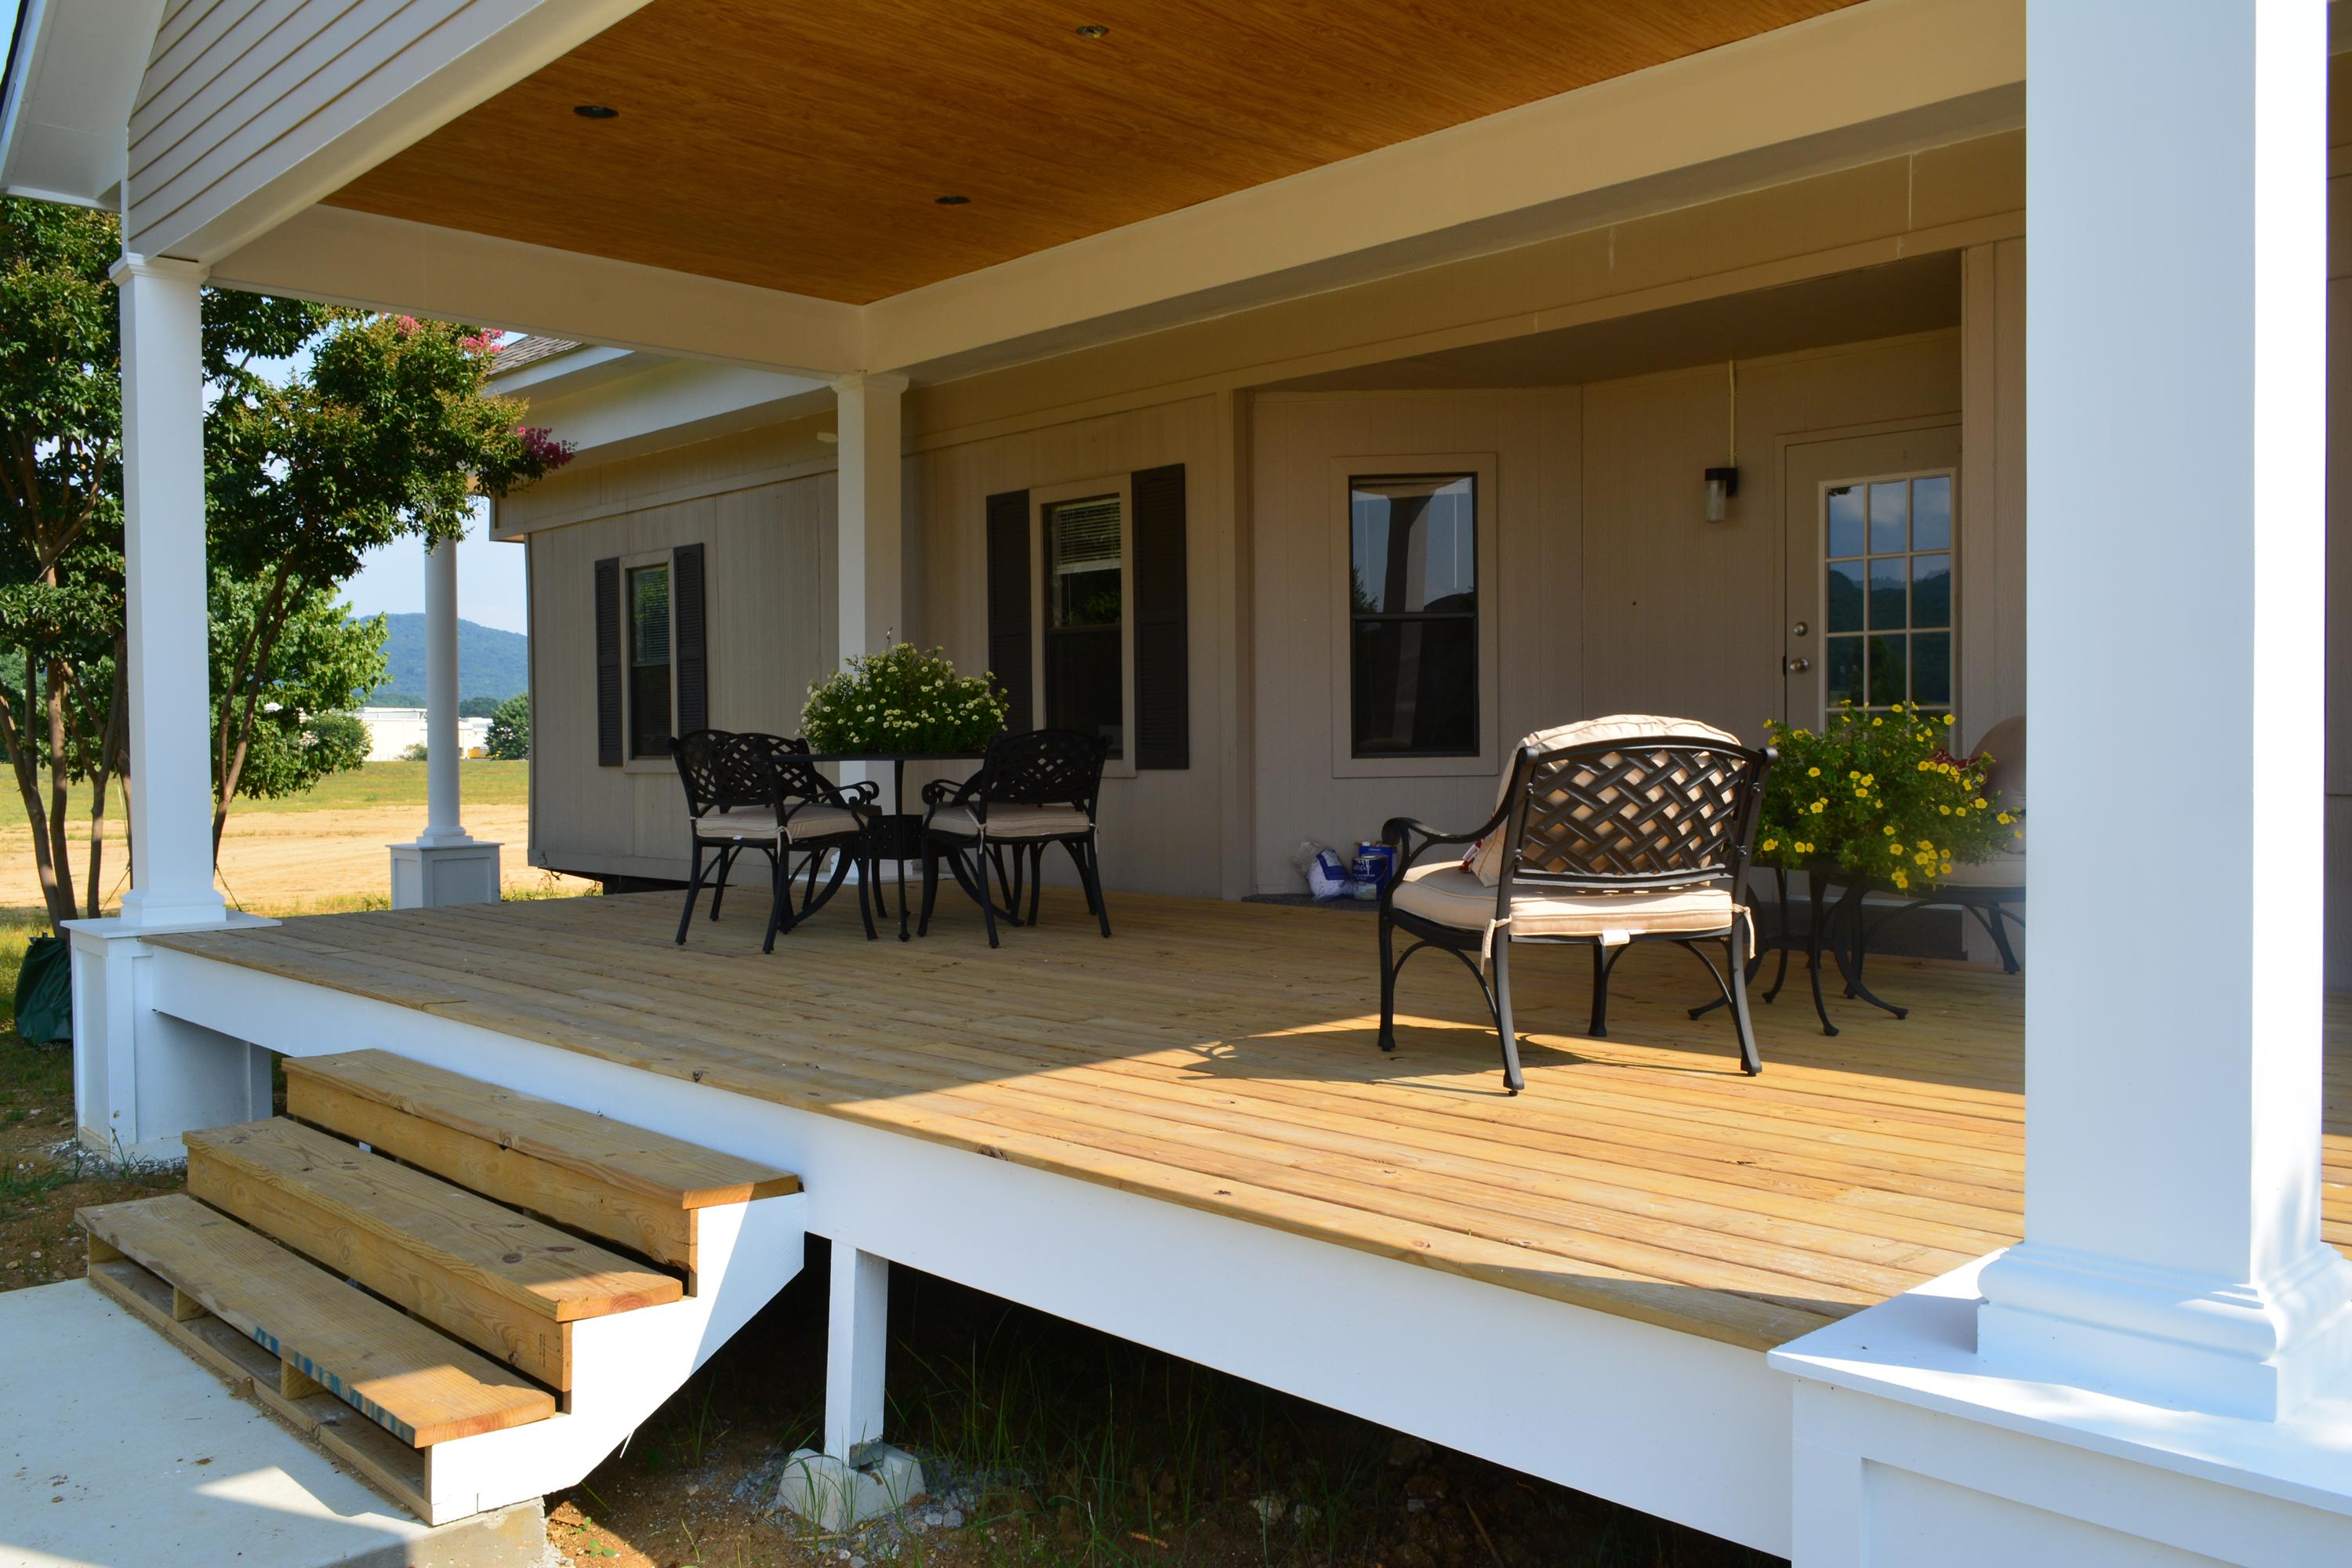 Come rest your feet on our Welcome Center's new Front Porch